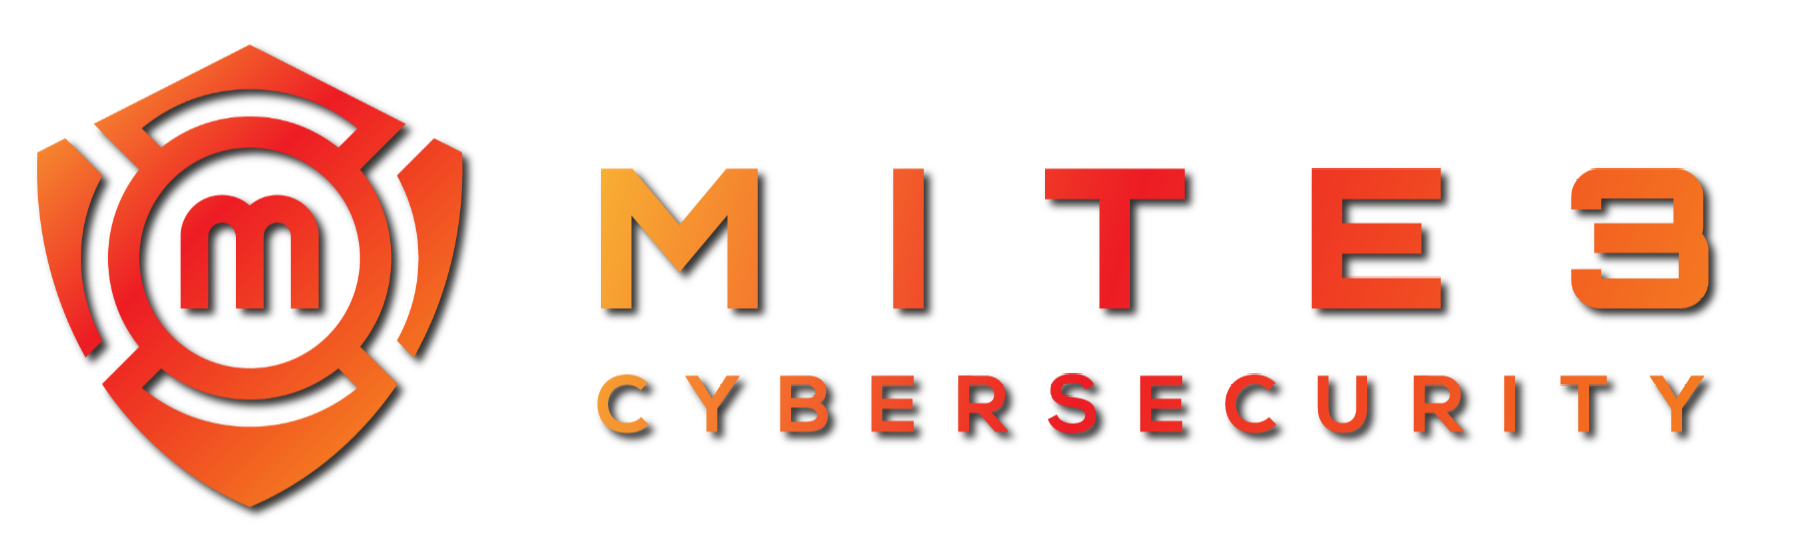 MITE3 Cybersecurity logo (wide shadow)